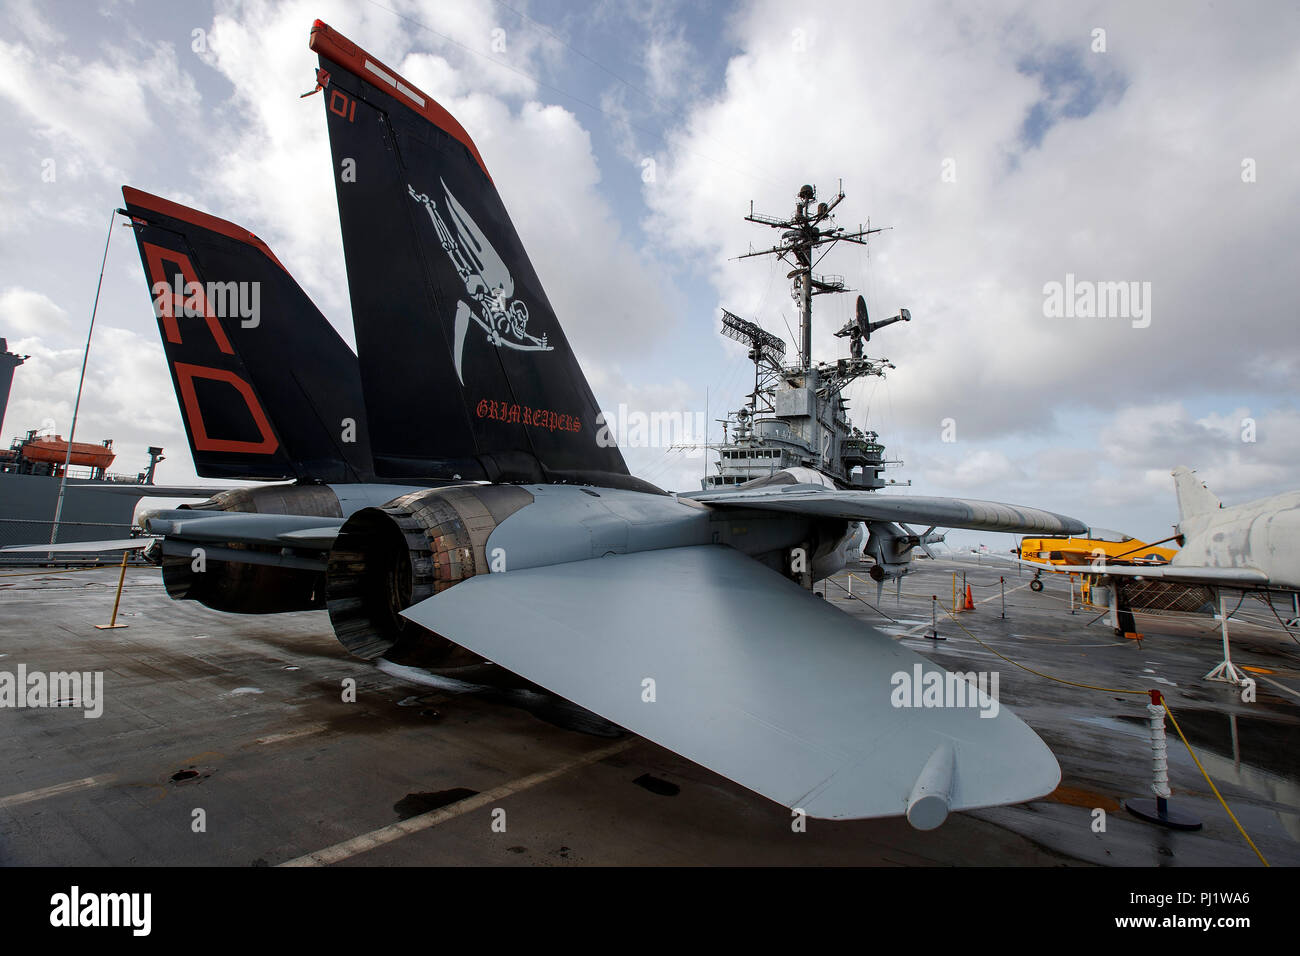 Grim Reapers tail art on Grumman F-14A Tomcat on the deck of the USS Hornet Museum, Alameda, California, United States of America - Stock Image